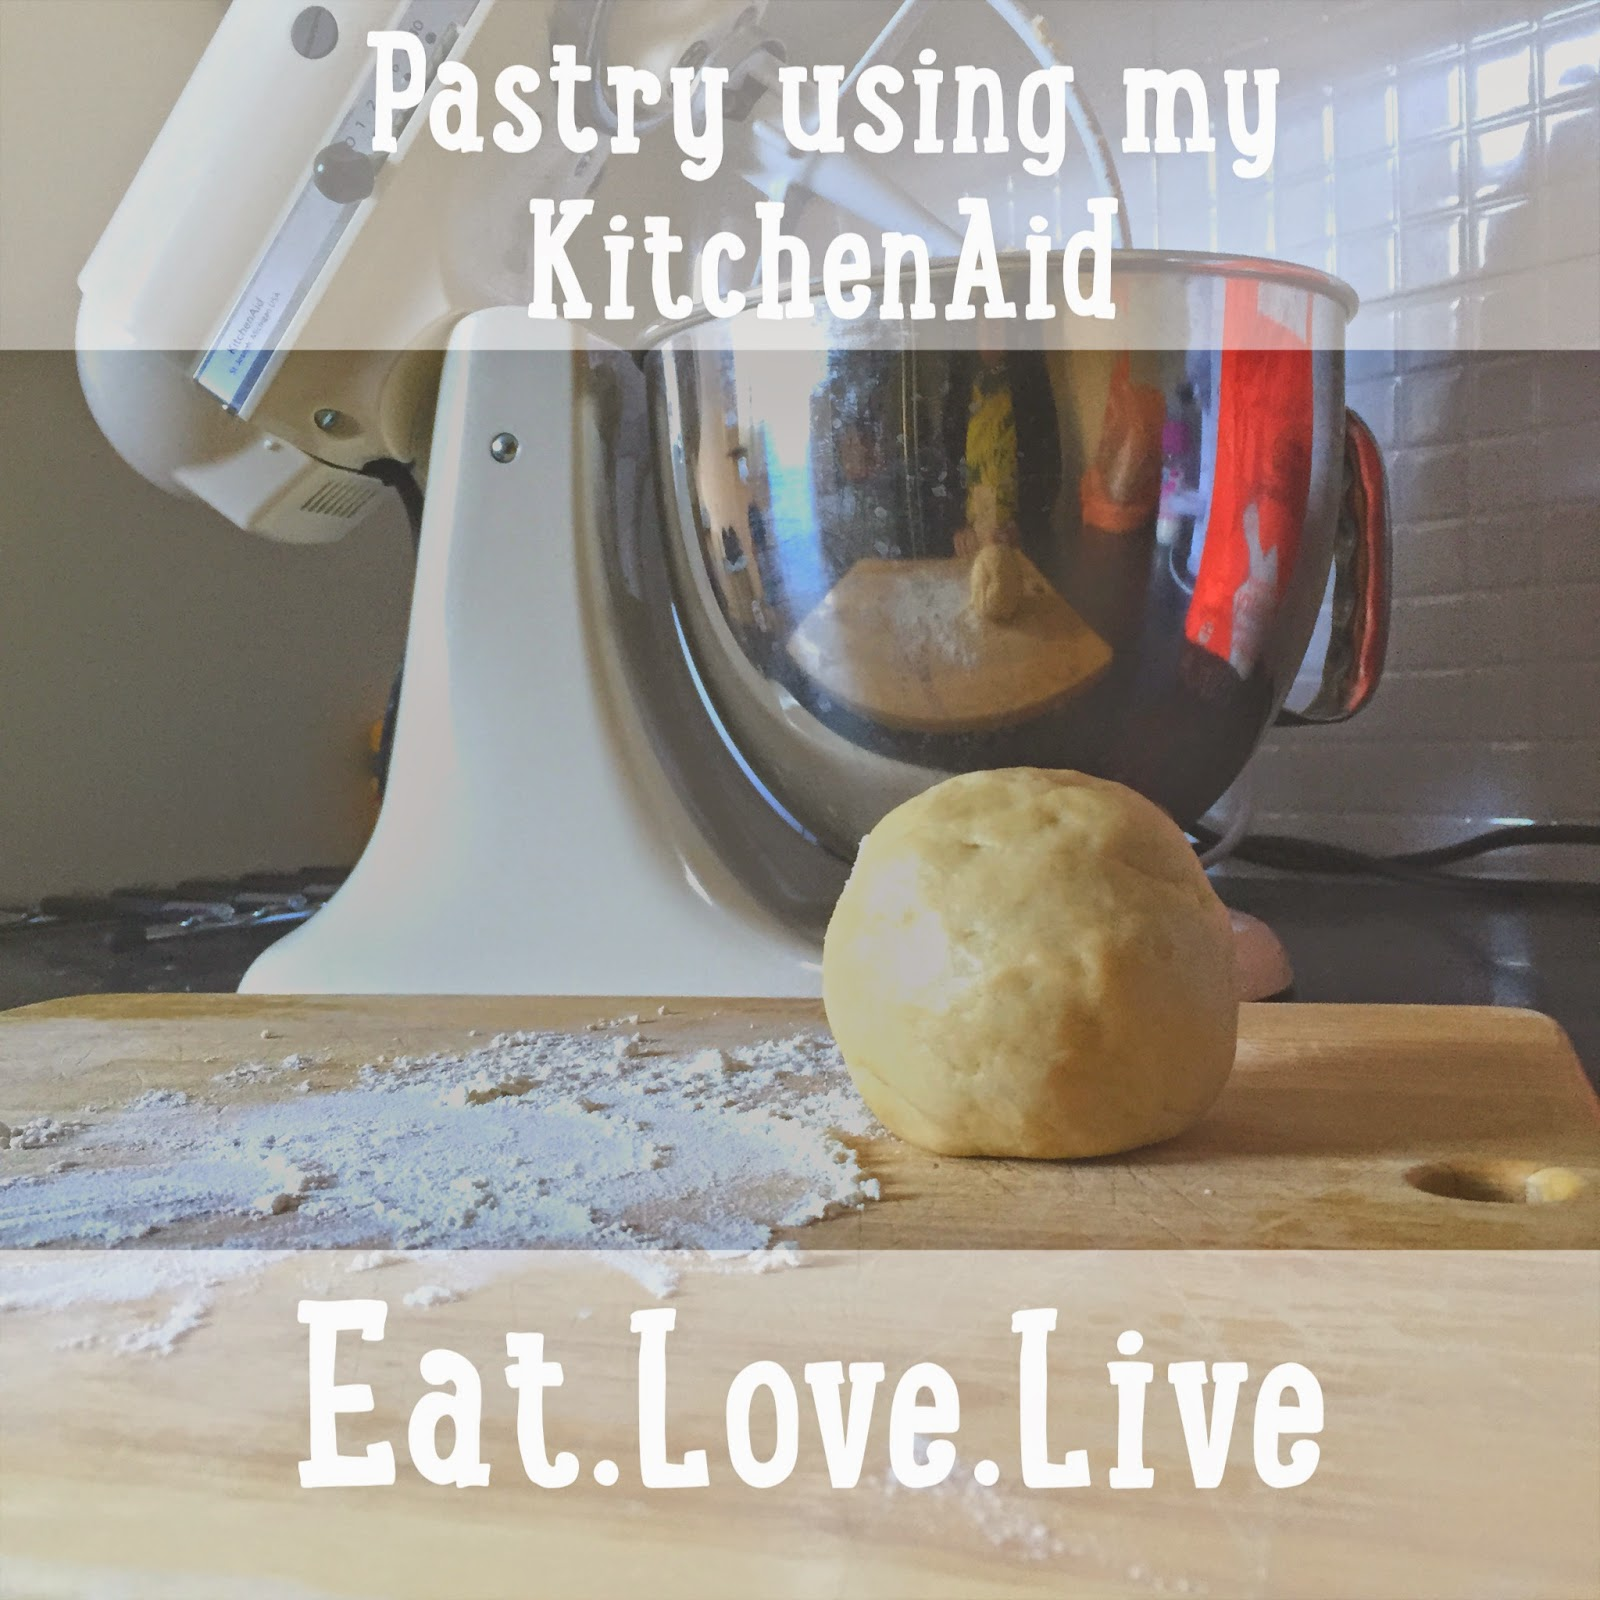 Recipe For Making Pastry With My KitchenAid - Eat.Love.Live